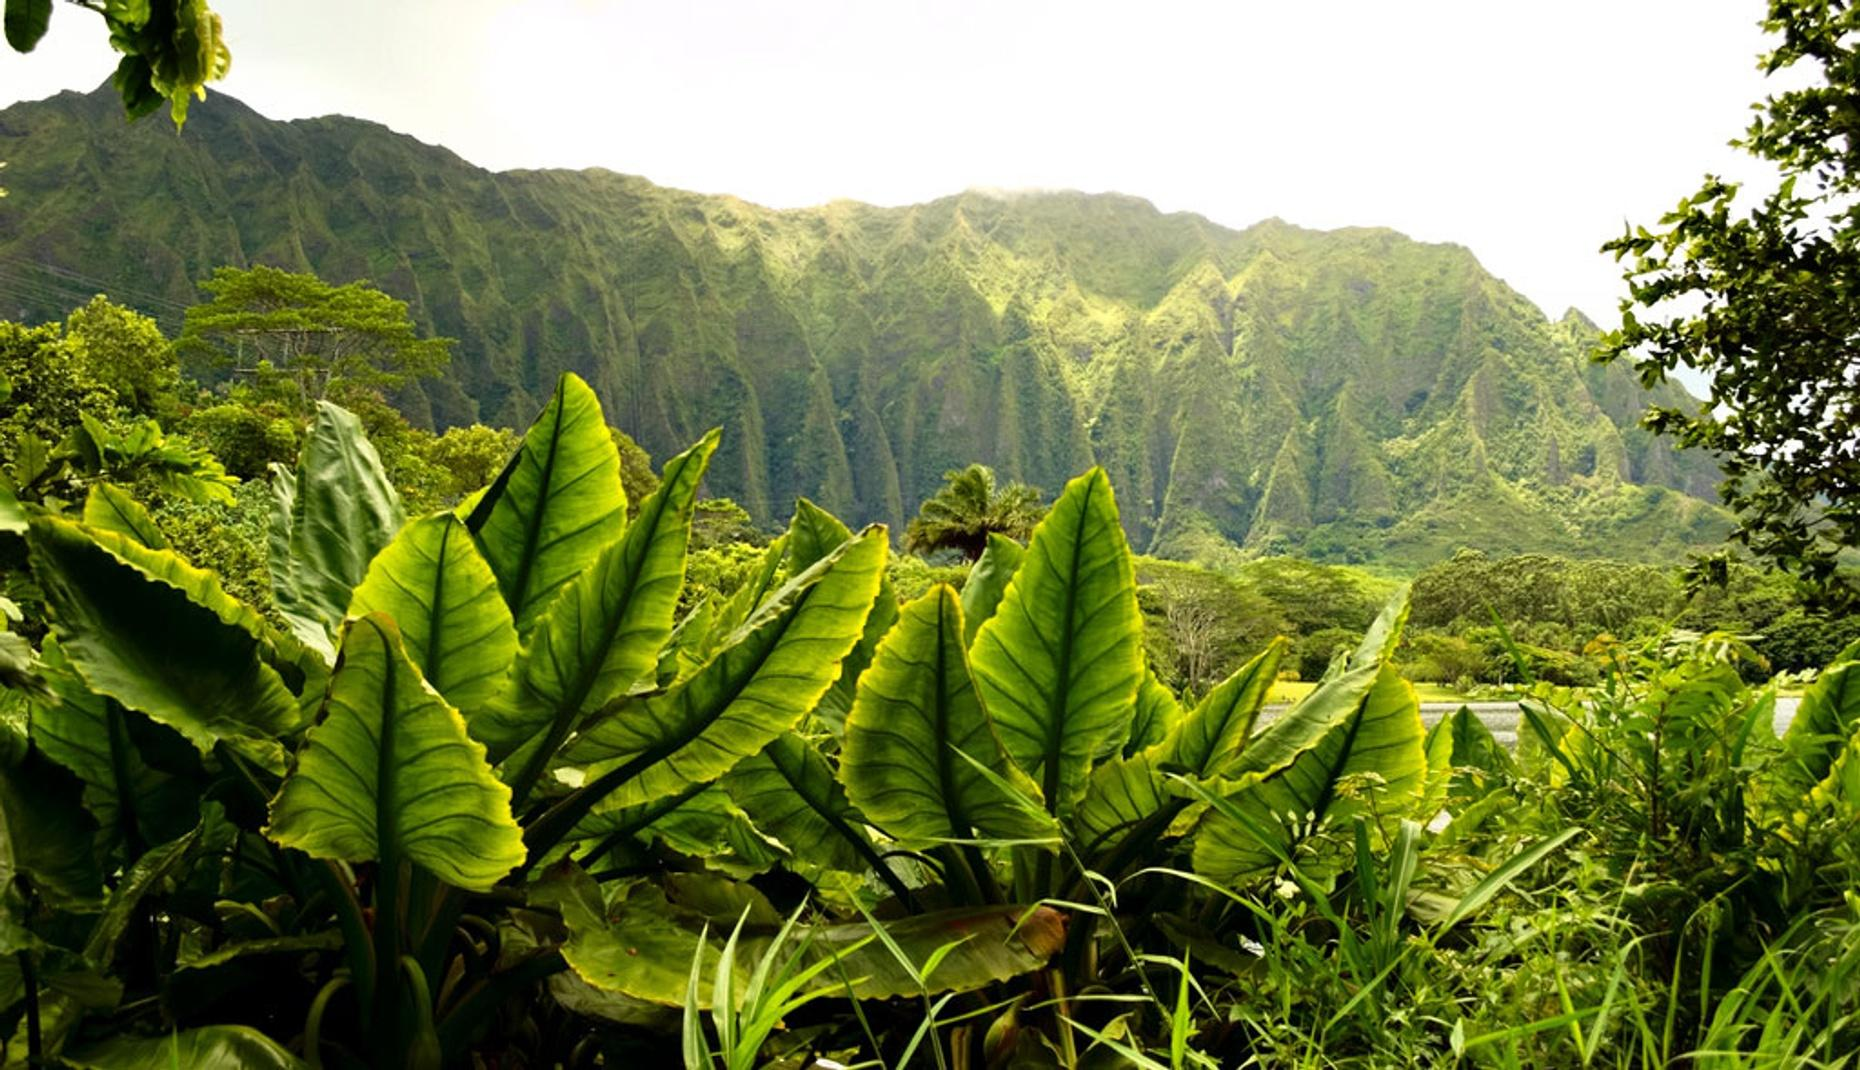 Guided Tour of a Bamboo Forest & Waterfalls in Hawaii